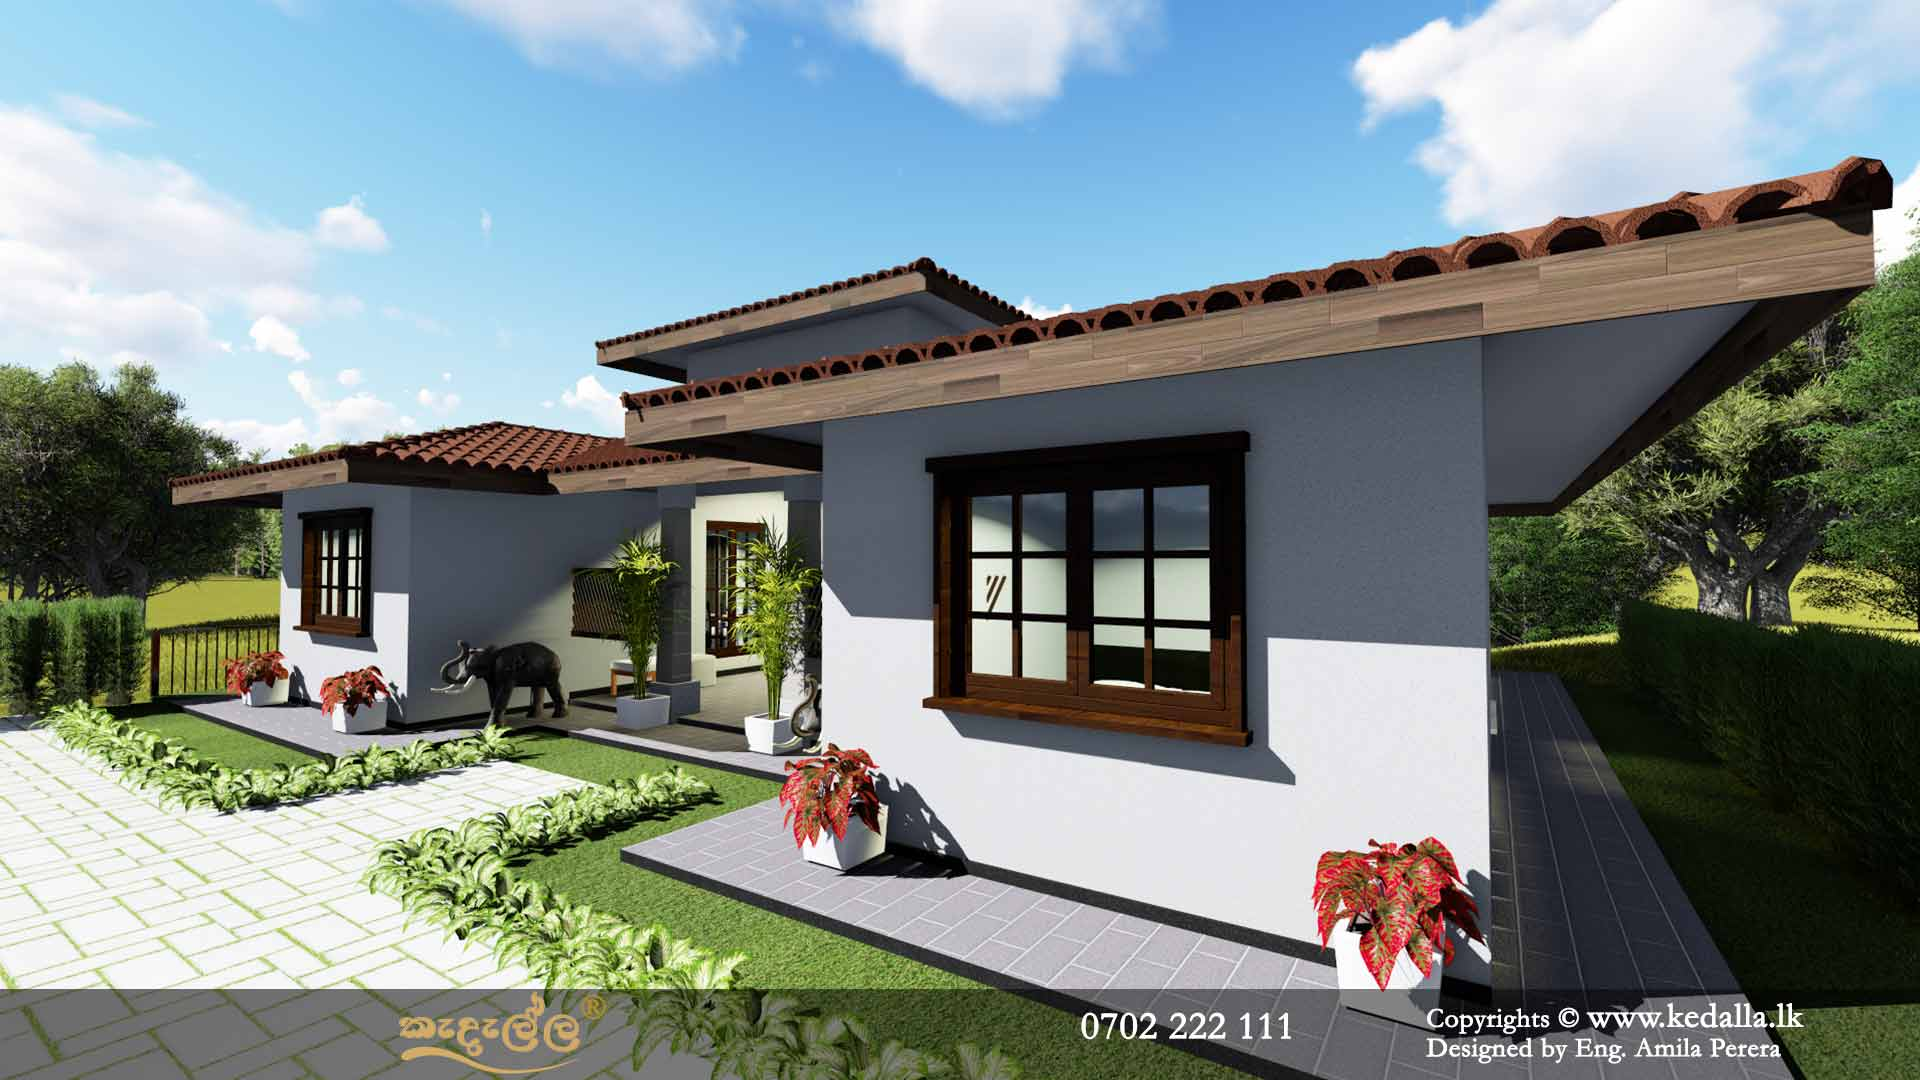 Home designers and draughtsman in Kandy sri lanka designed house plans for handicap/diable persons